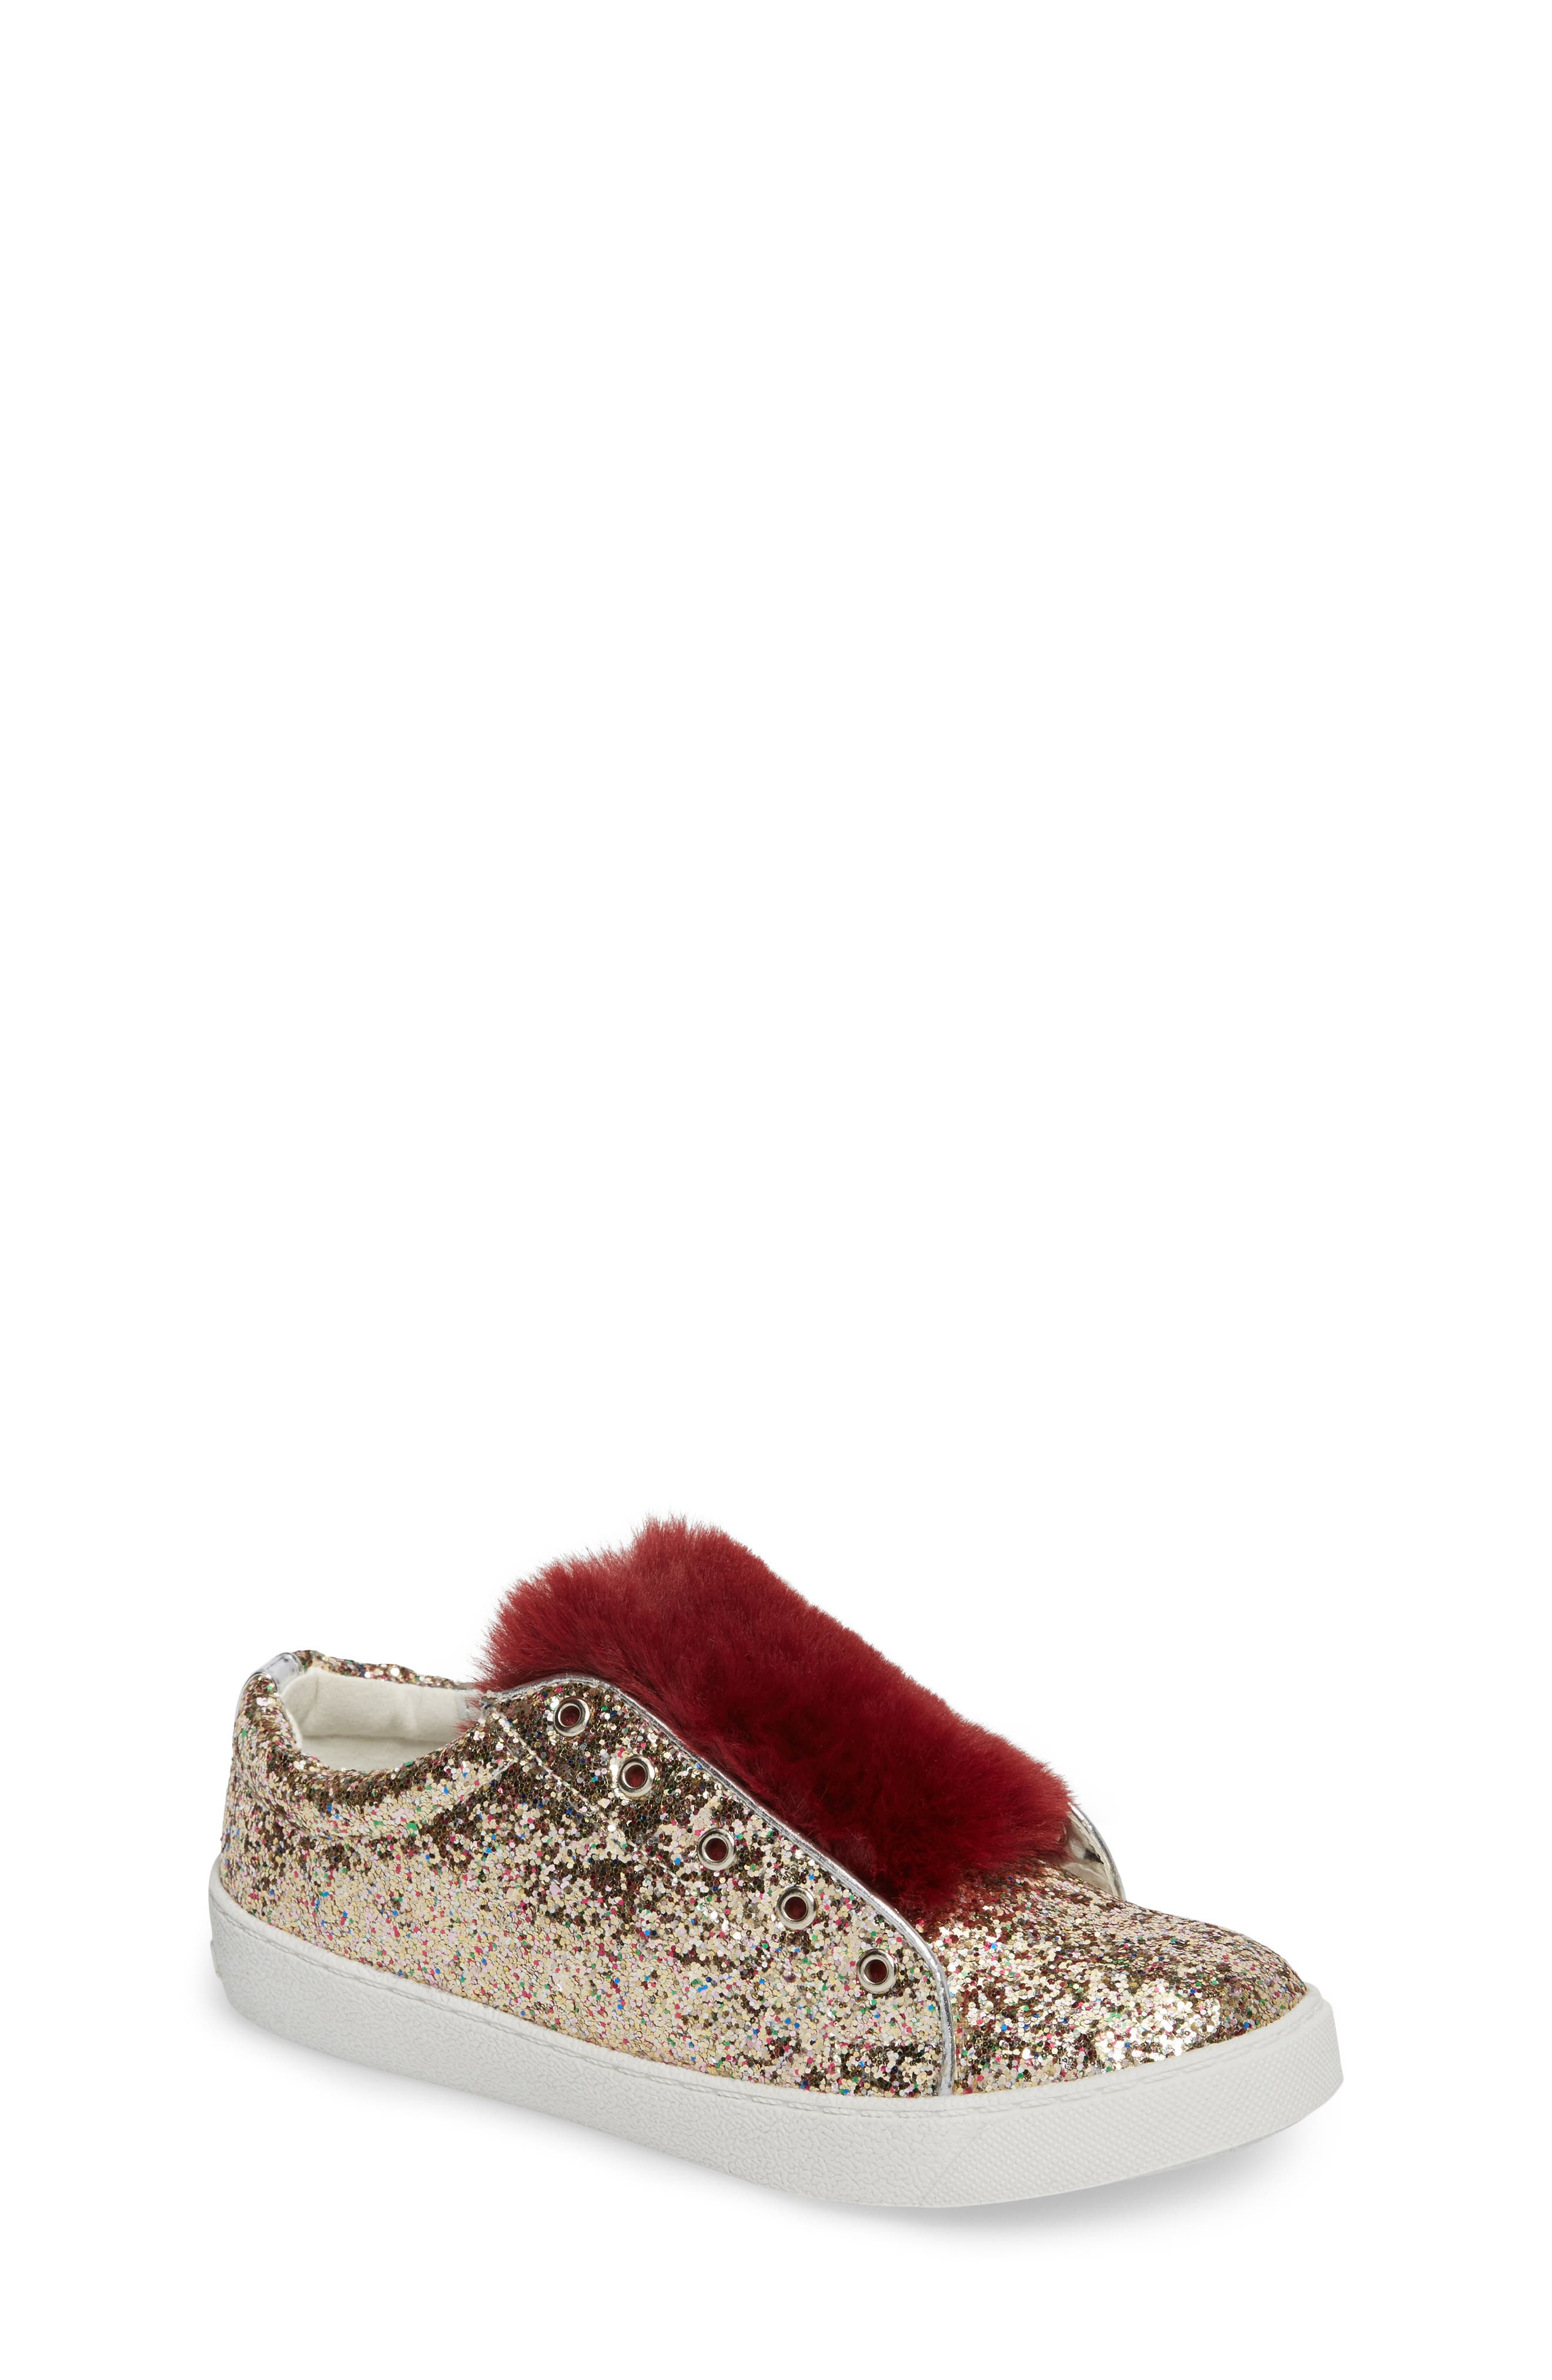 Sam Edelman Britt Rita Faux Fur Glitter Sneaker (Toddler, Little Kid & Big Kid)